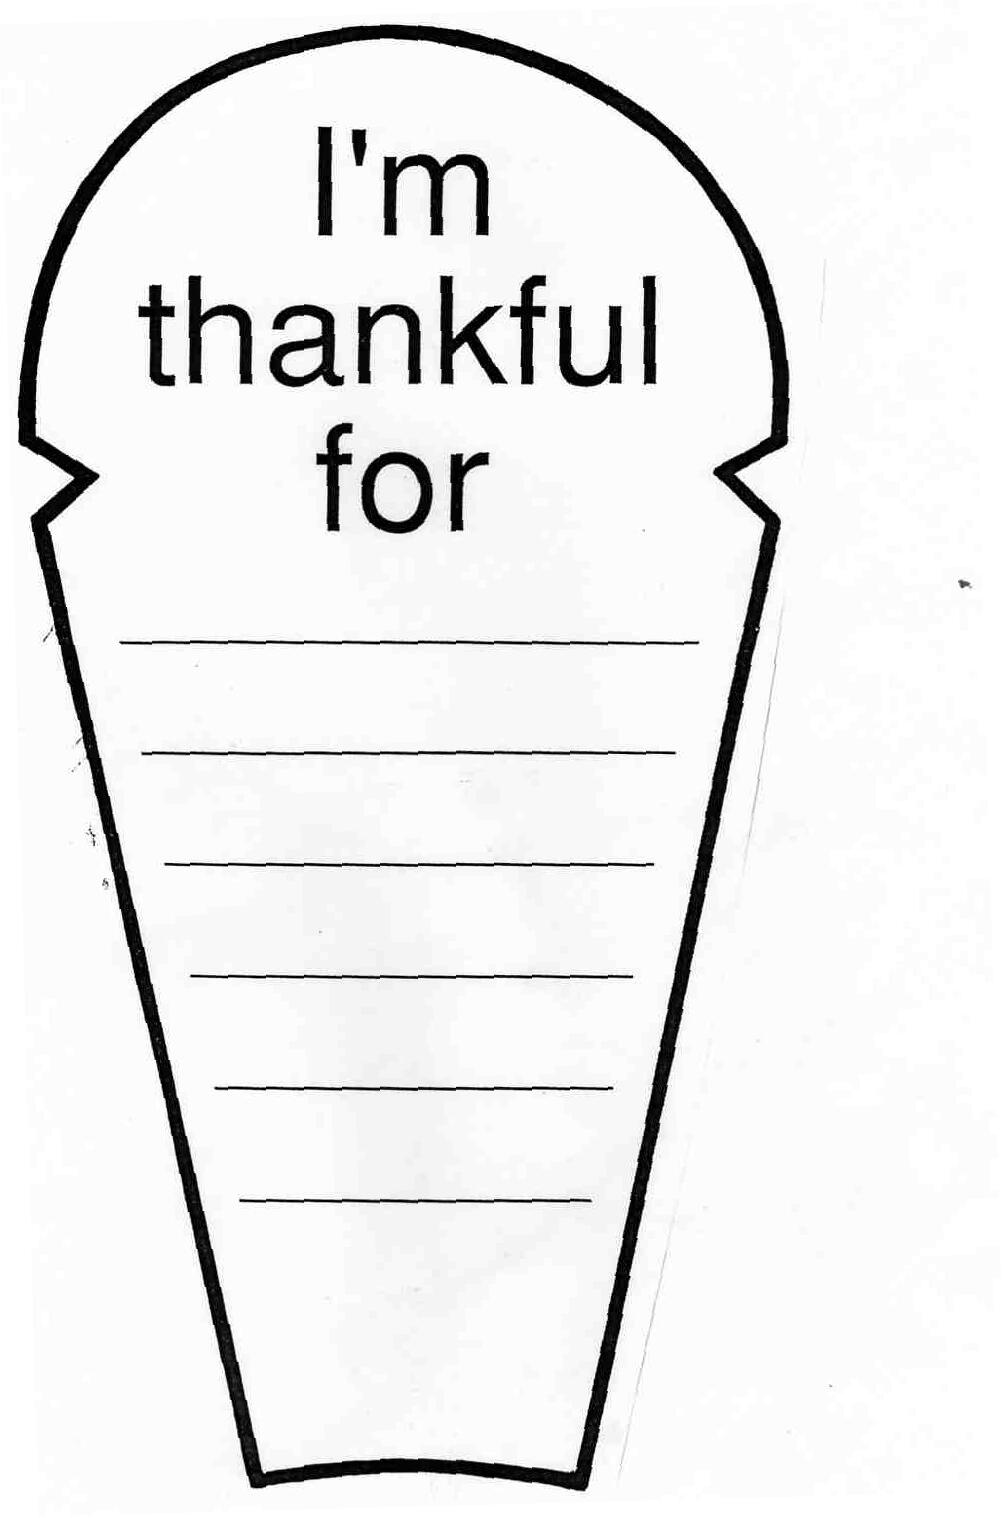 ELEMENTARY SCHOOL ENRICHMENT ACTIVITIES: WE GIVE THANKS BULLETIN BOARD